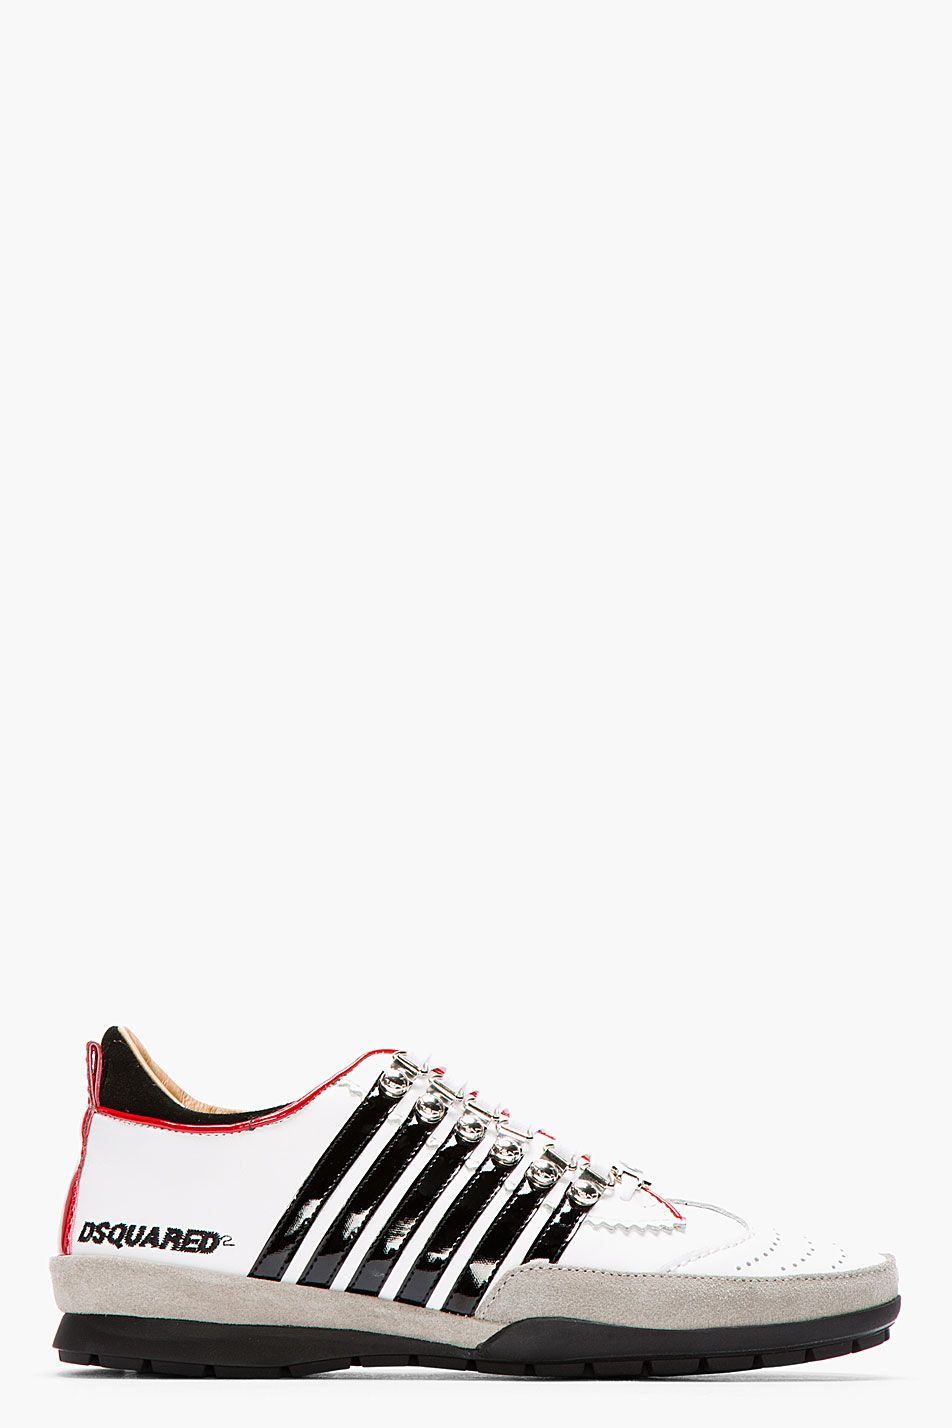 DSQUARED2 White Leather Vitello Sport Sneakers · Shoes MenShoes ...